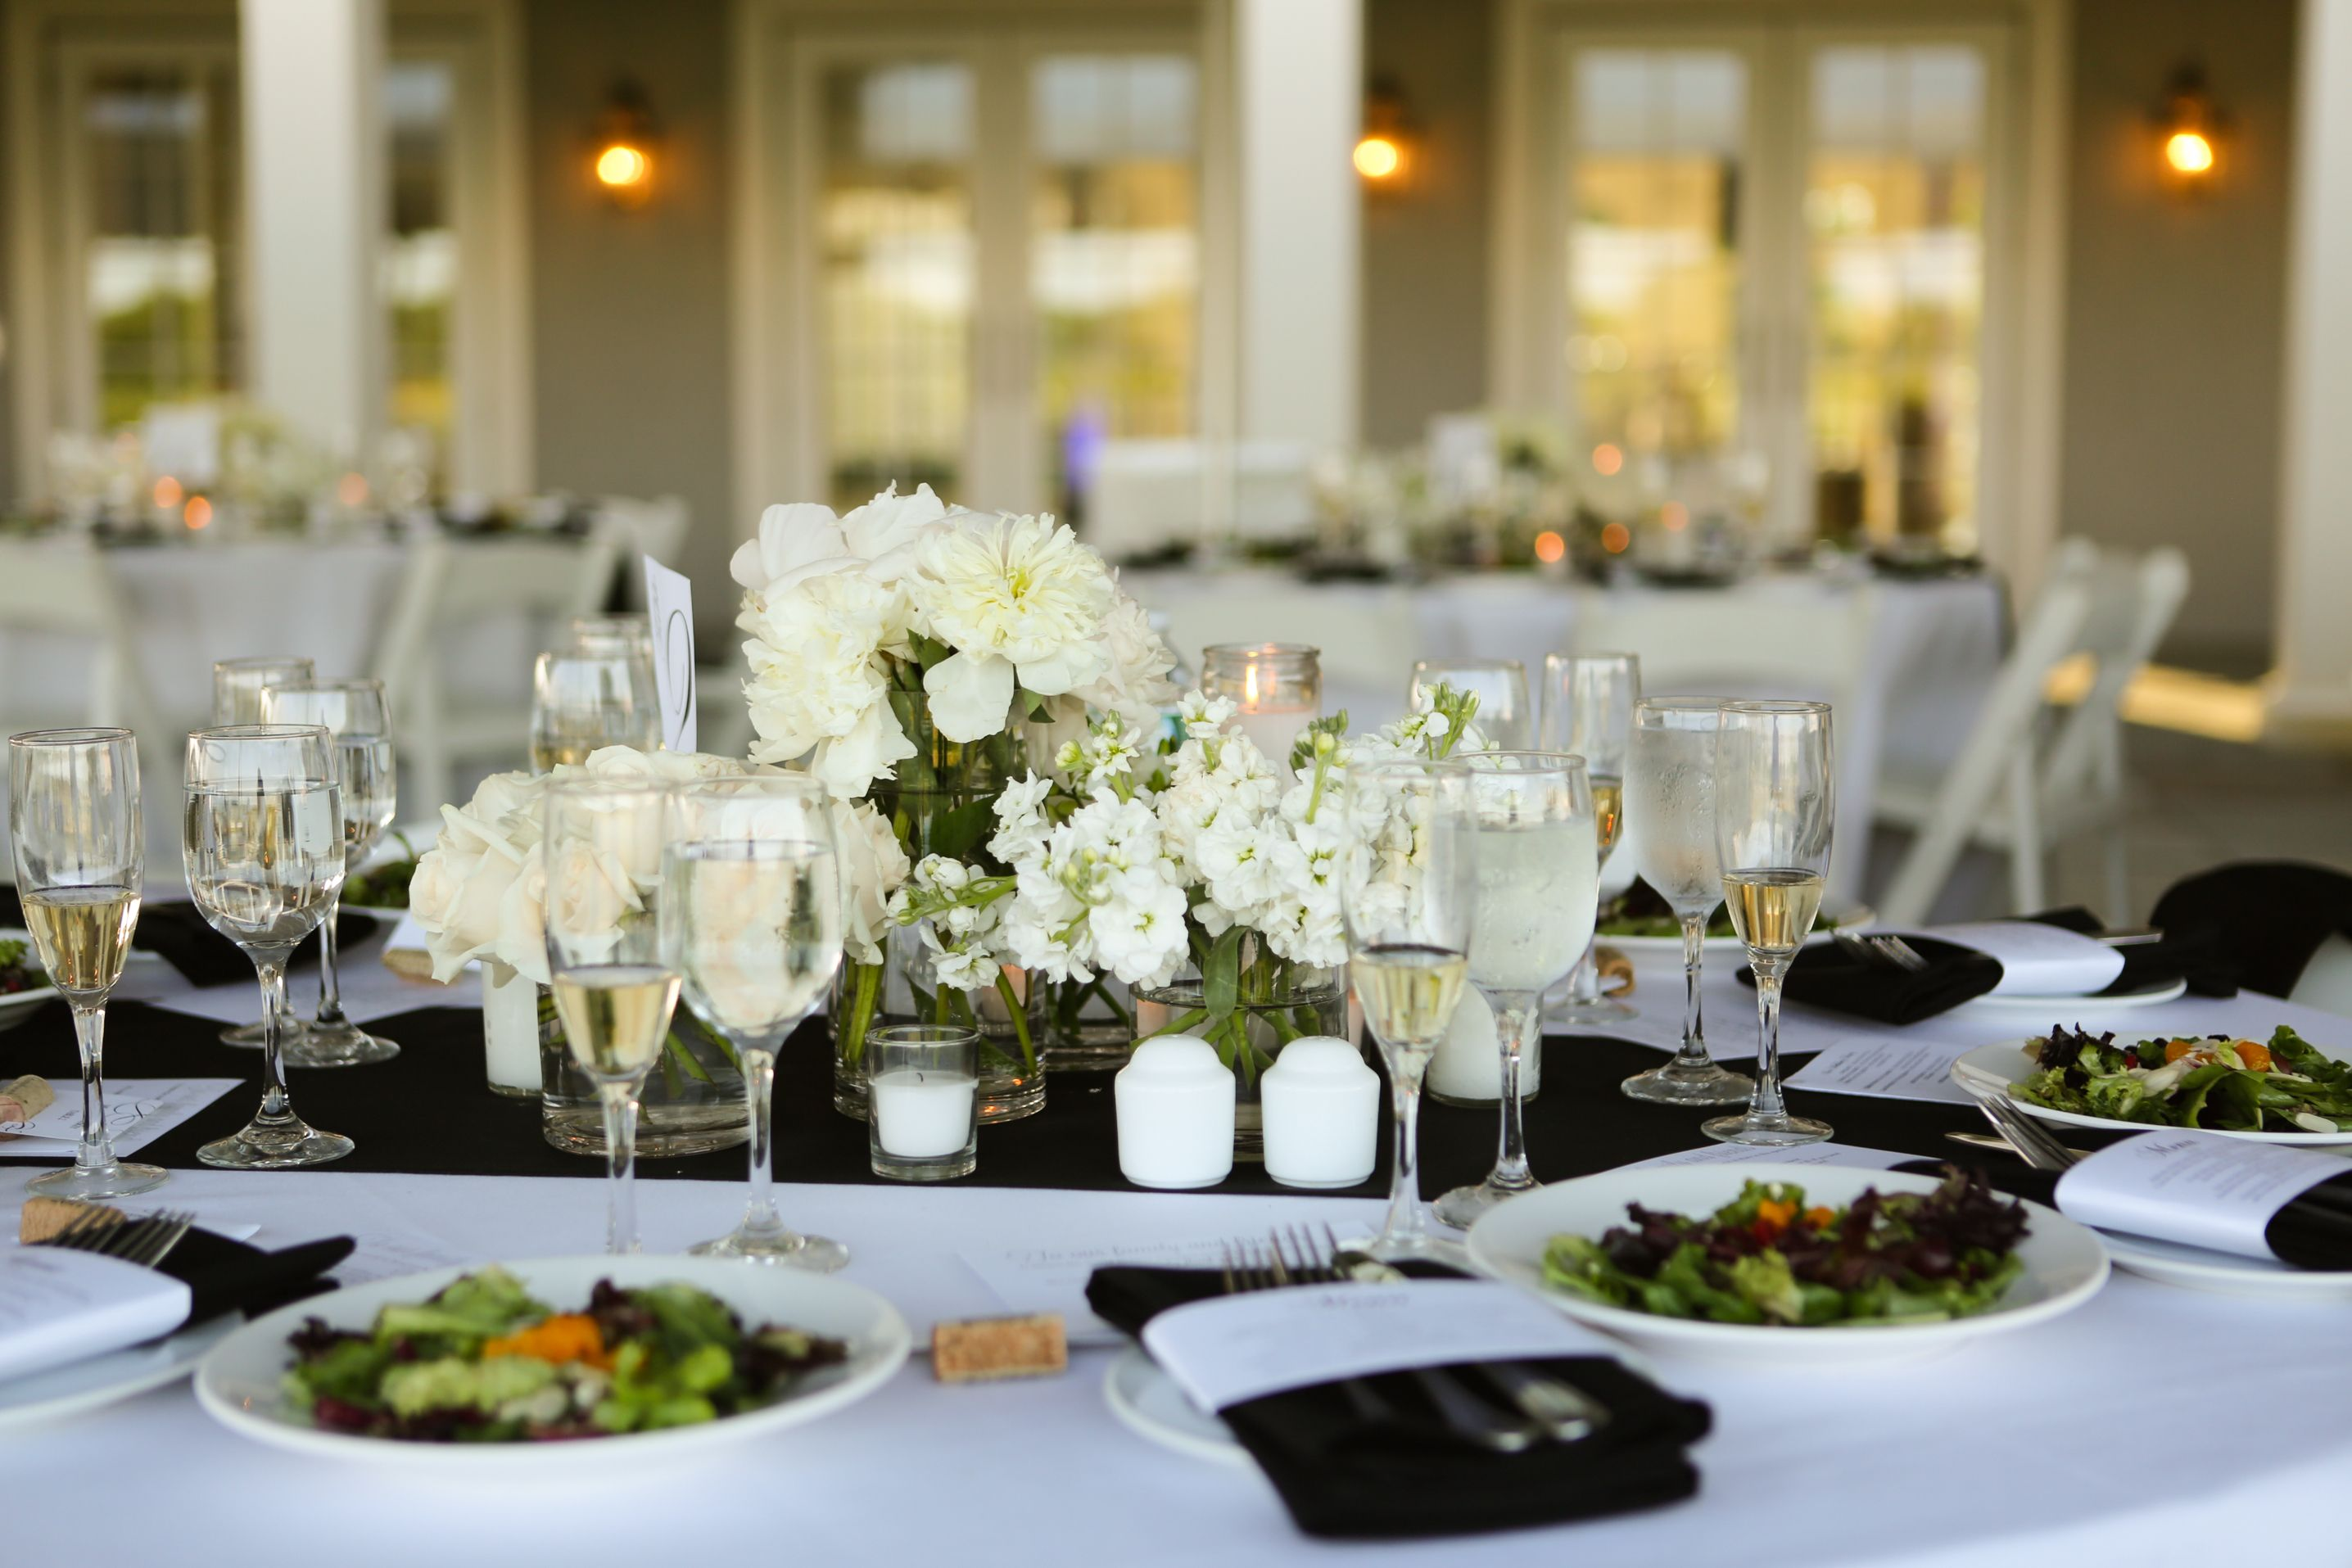 Upscale Catering & Event Company for sale in NY